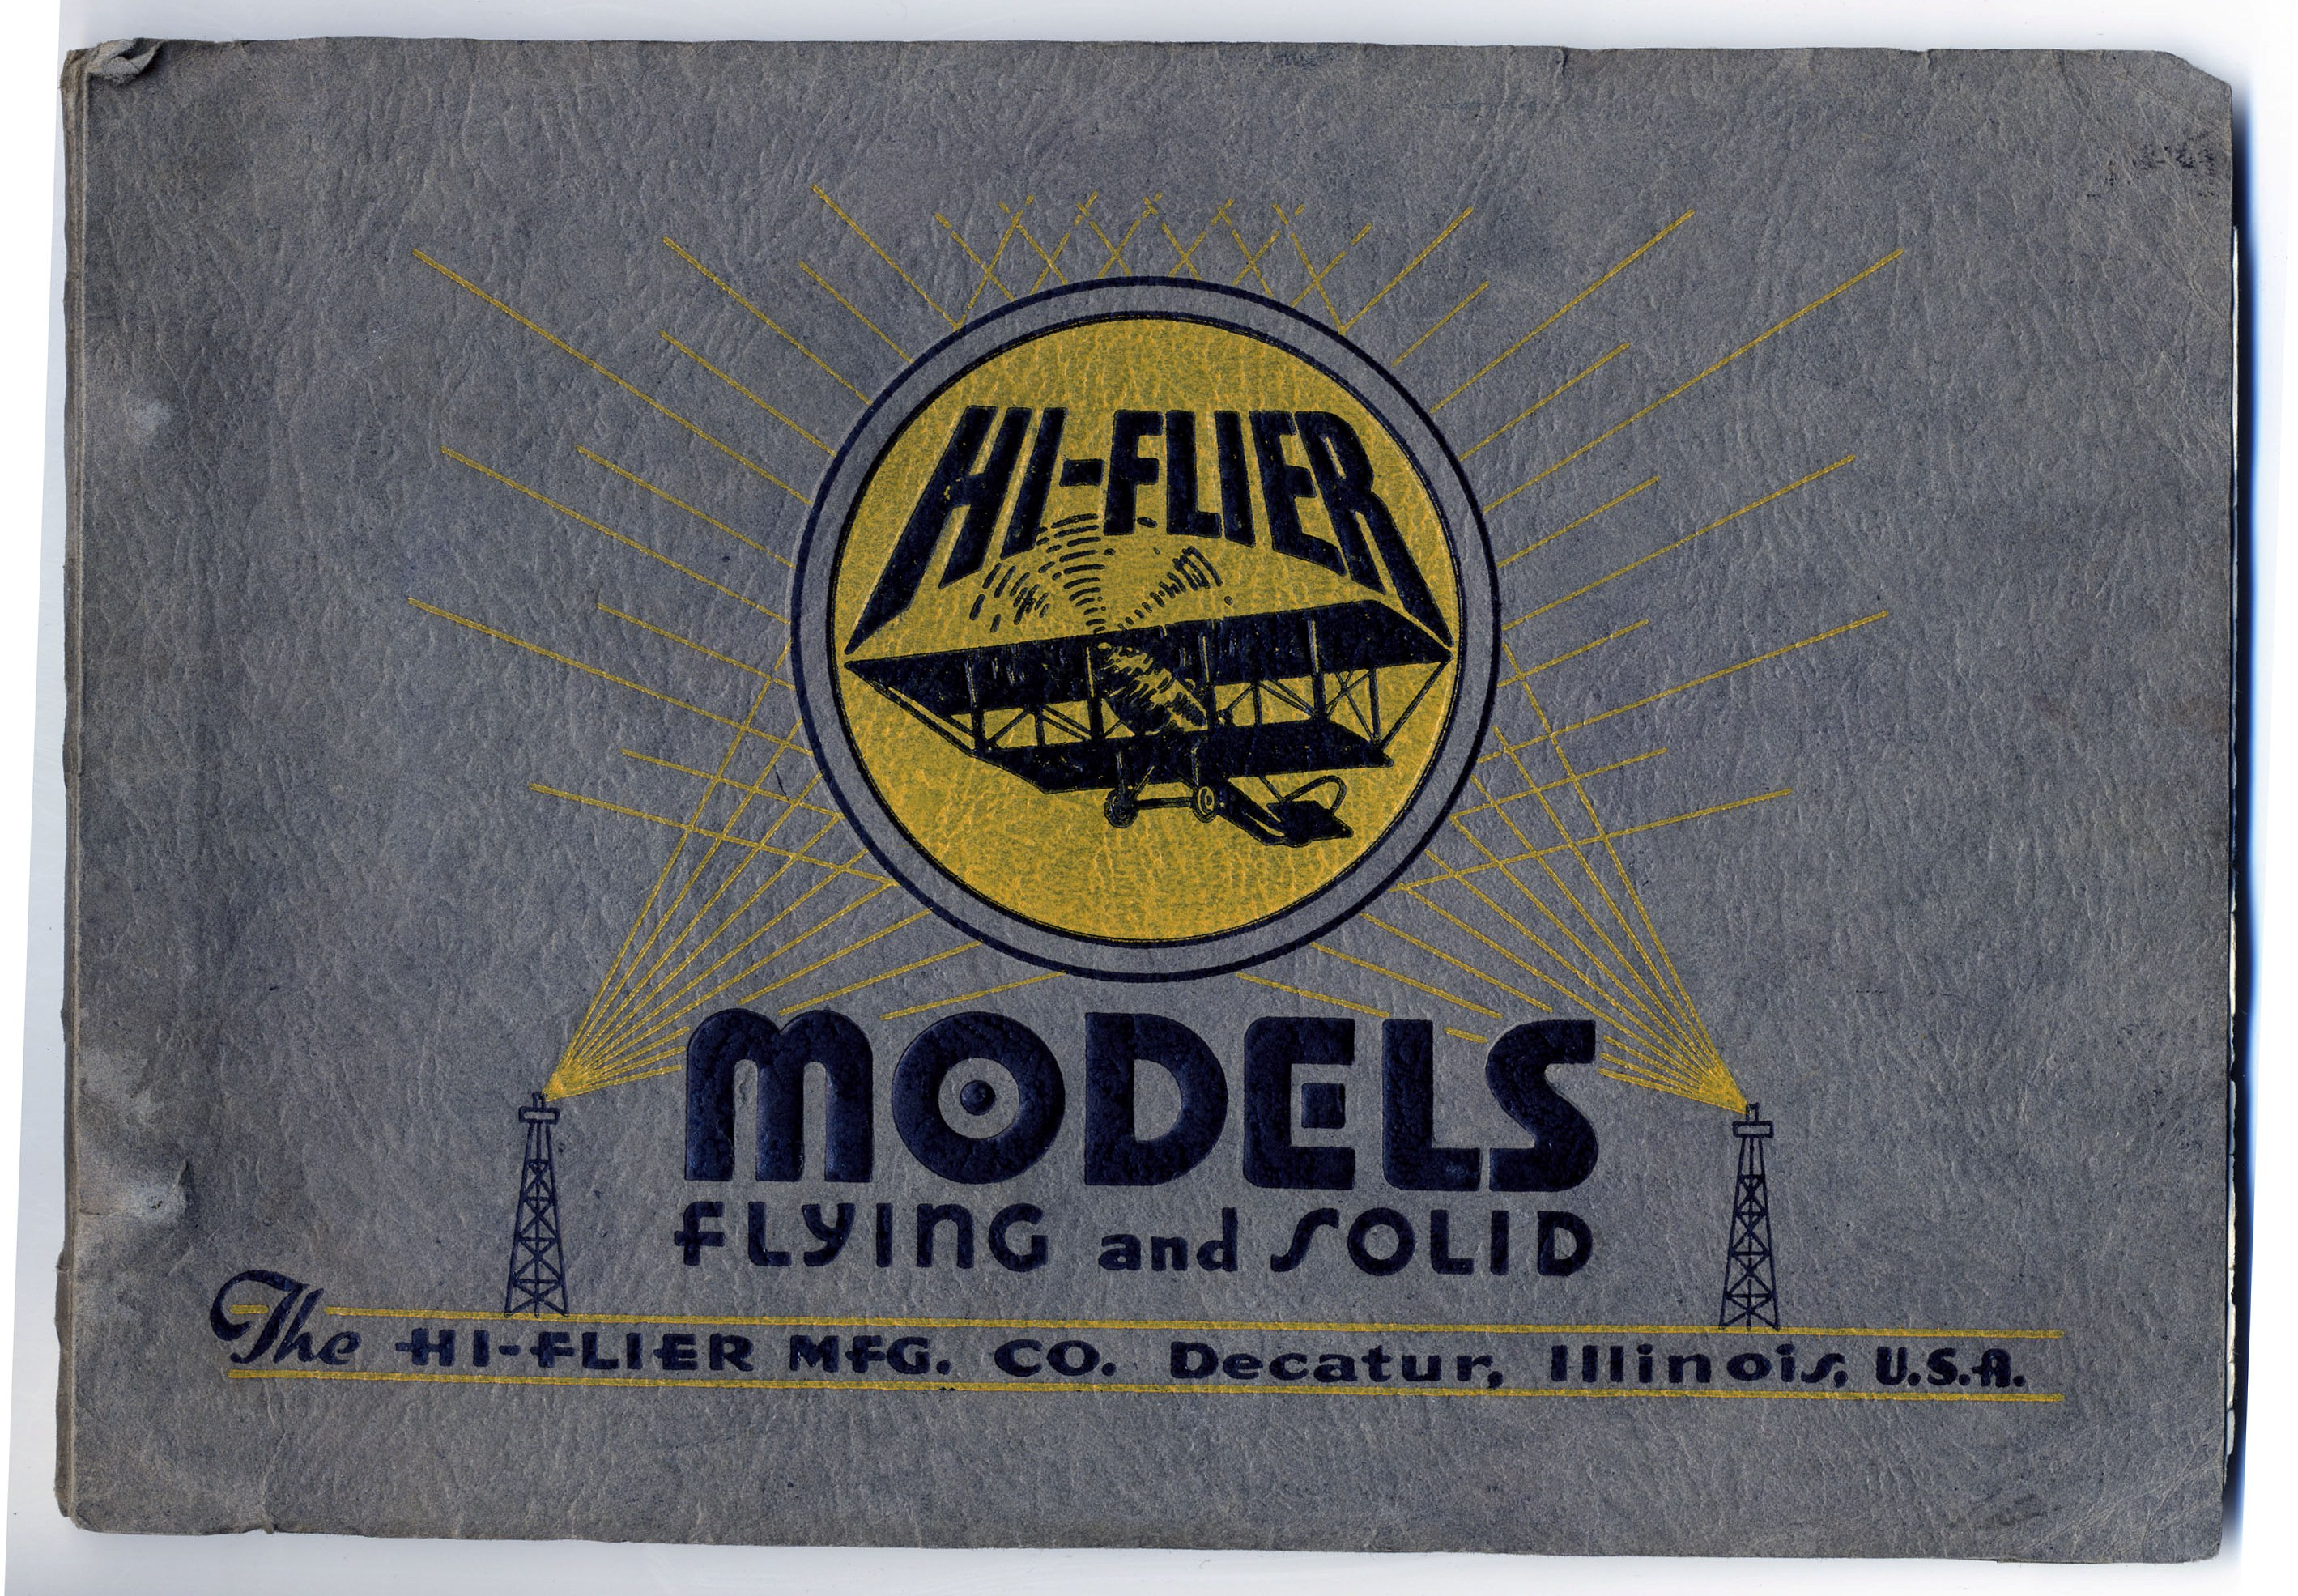 Catalog for hobby shop displays, front and inside page, Hi-Flier Manufacturing Company, c. 1930s-1940s. (Source: National Model Aviation Museum Archives, Manufacturers and Companies Collection #0043)